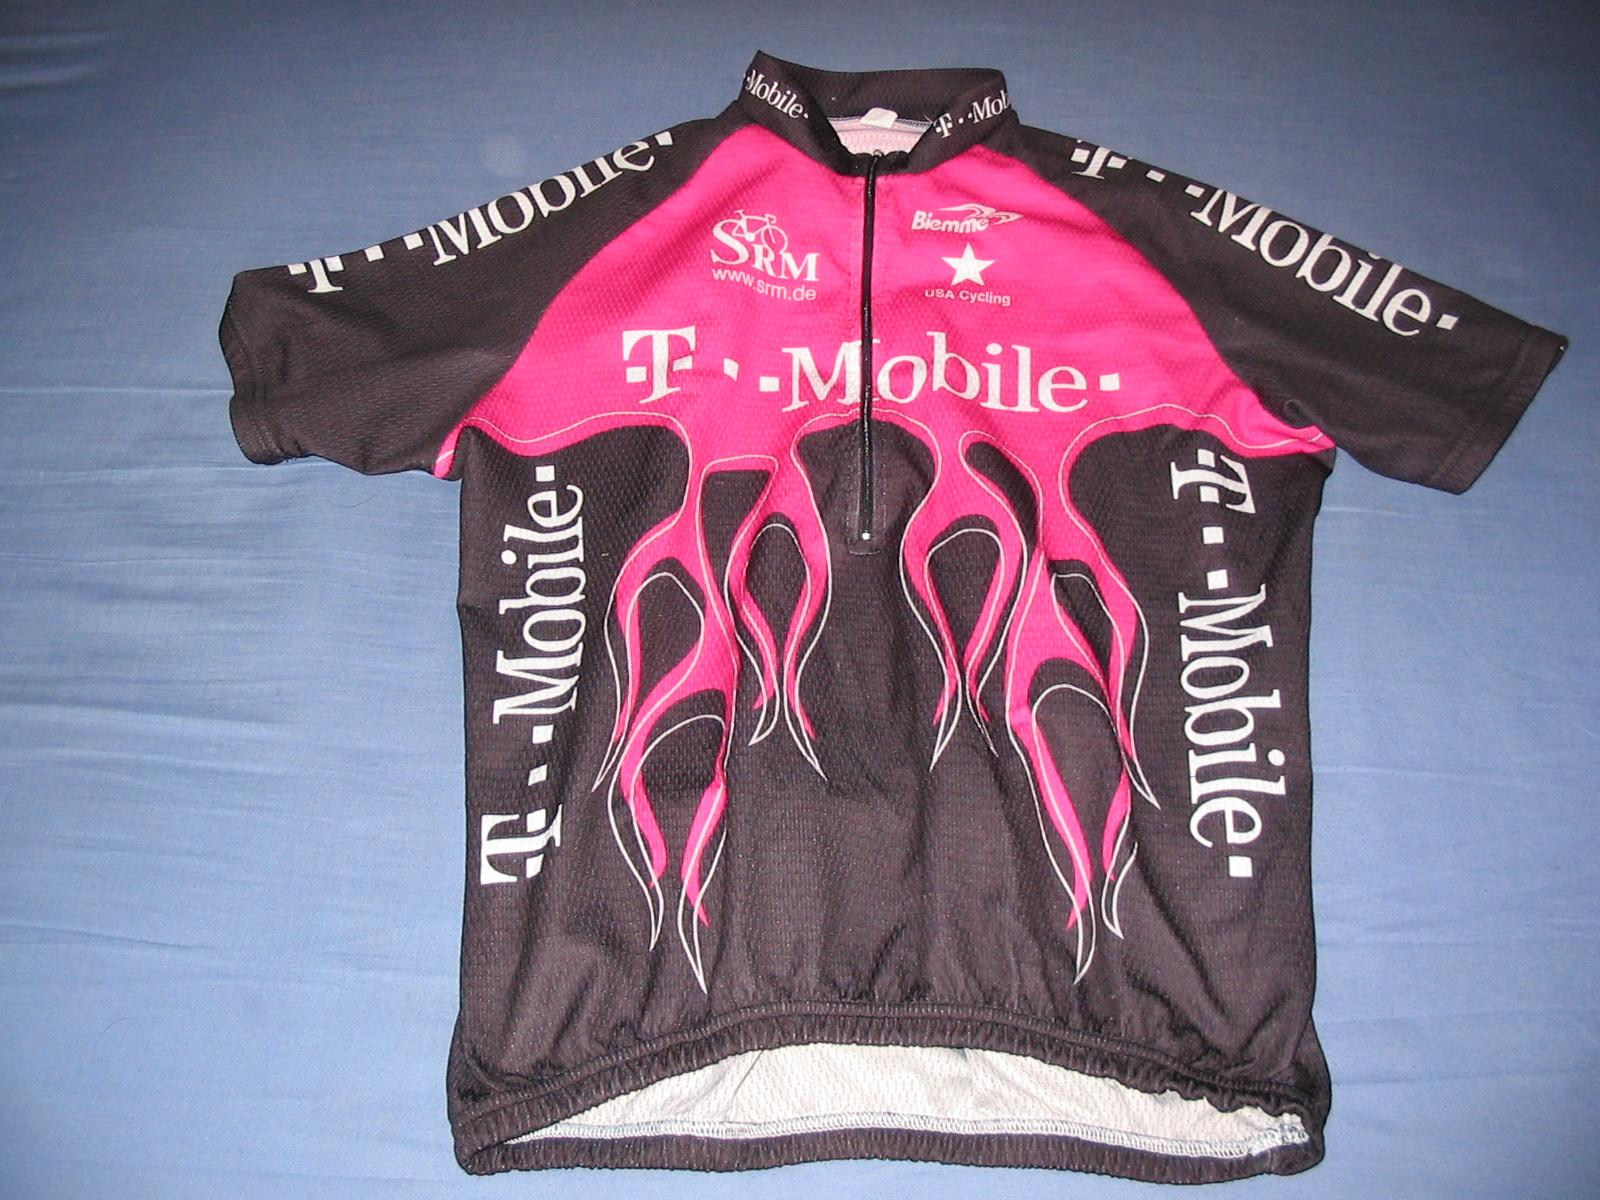 svana.org/sjh/images/jerseys/tmobile_full.jpg